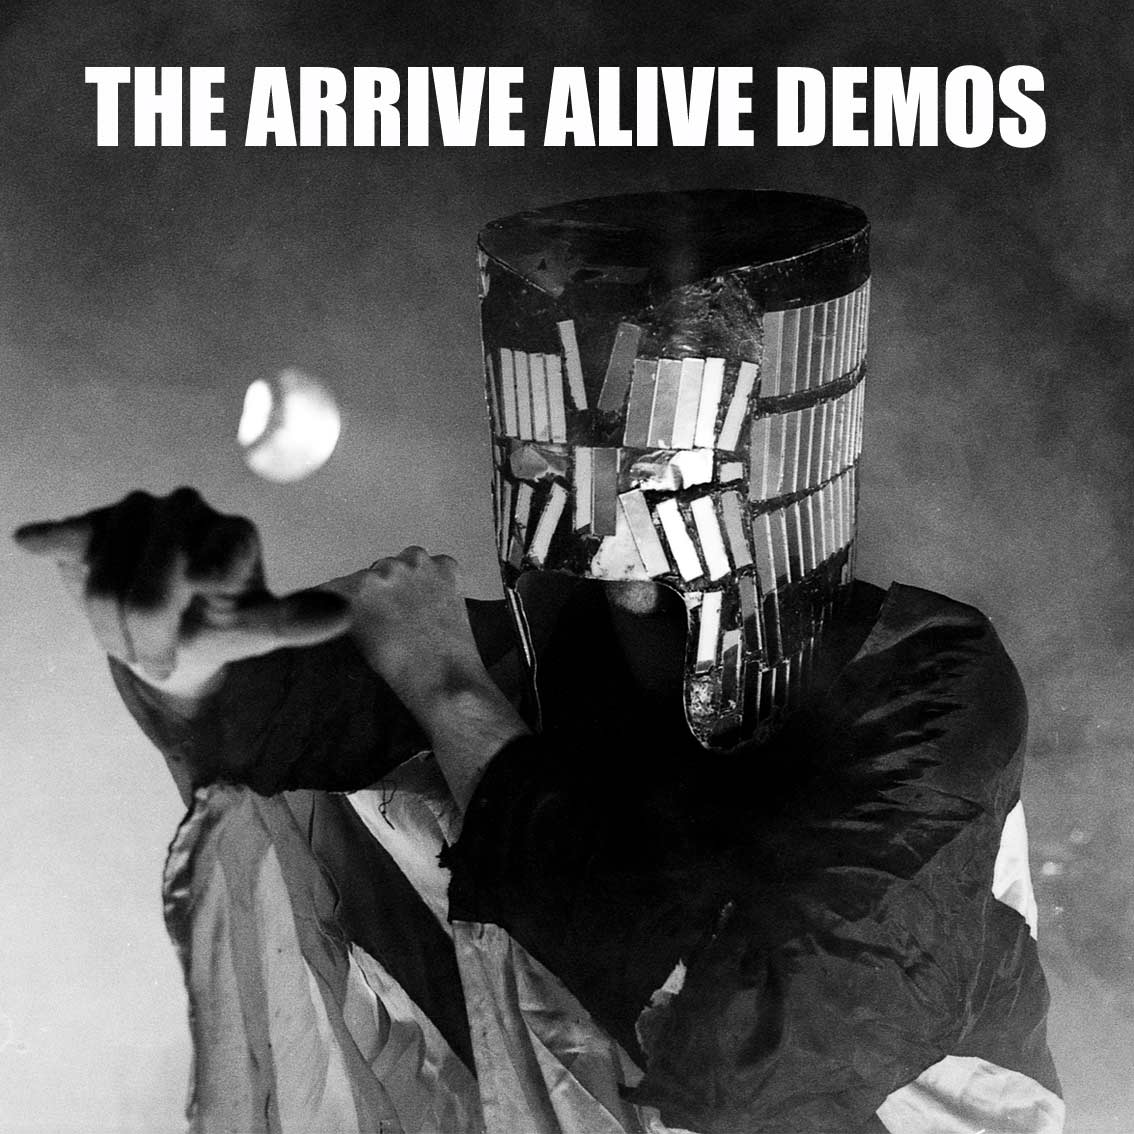 Arrive Alive Demos